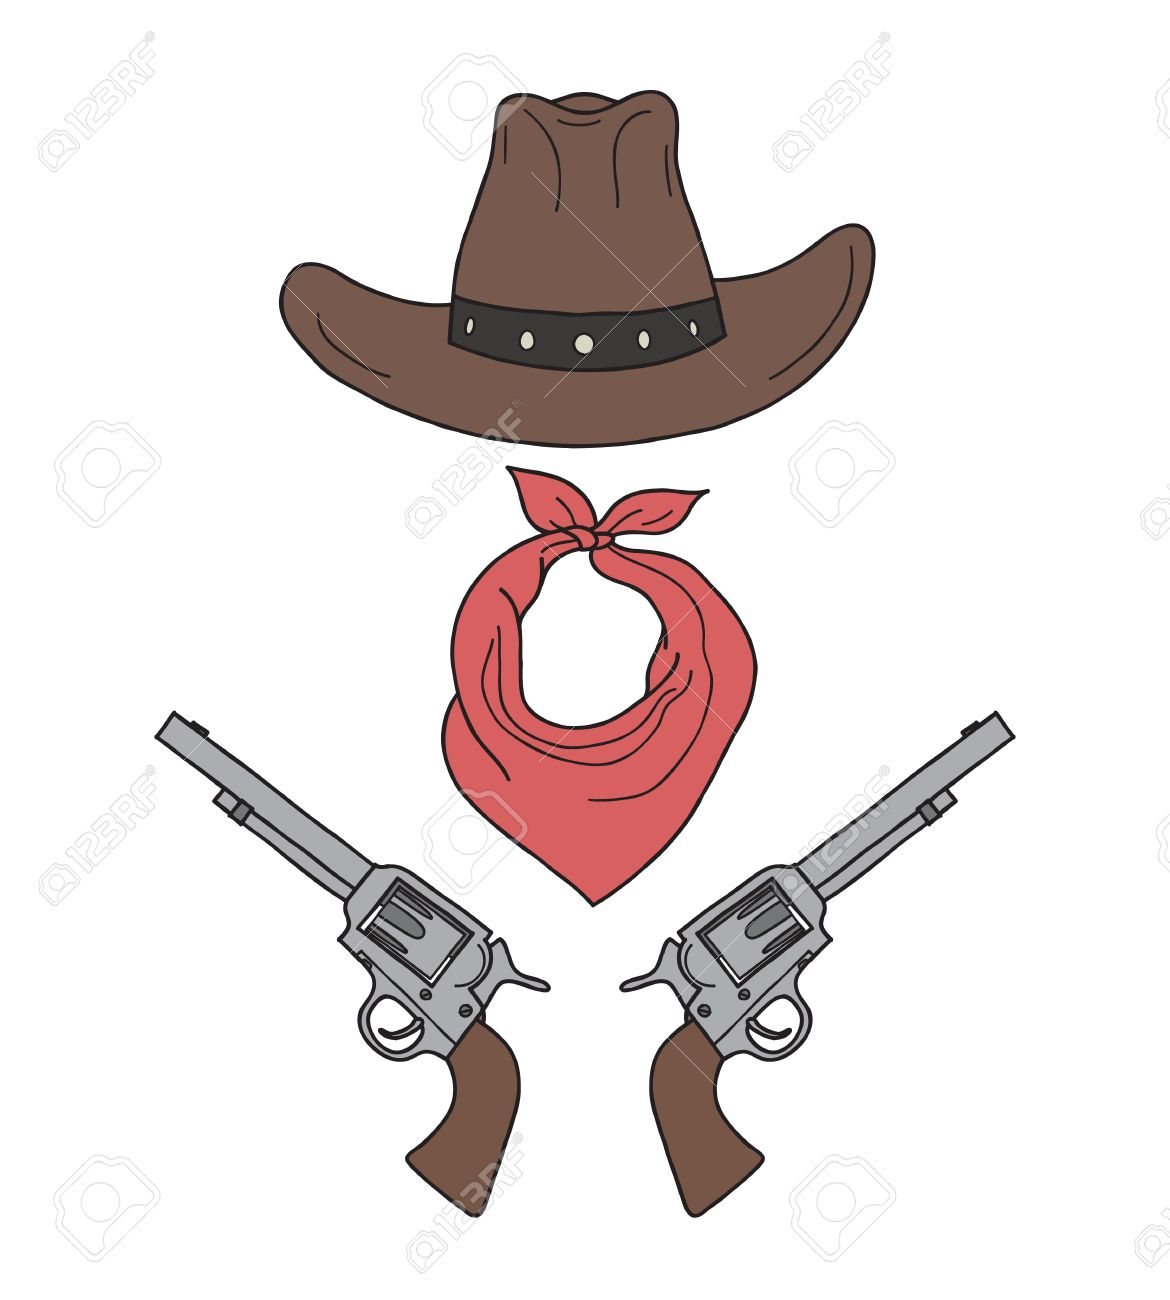 04bad8c9be4 Wild West Western Colored Elements. Hand Drawn Cowboy Accessories. Stock  Vector - 65352700